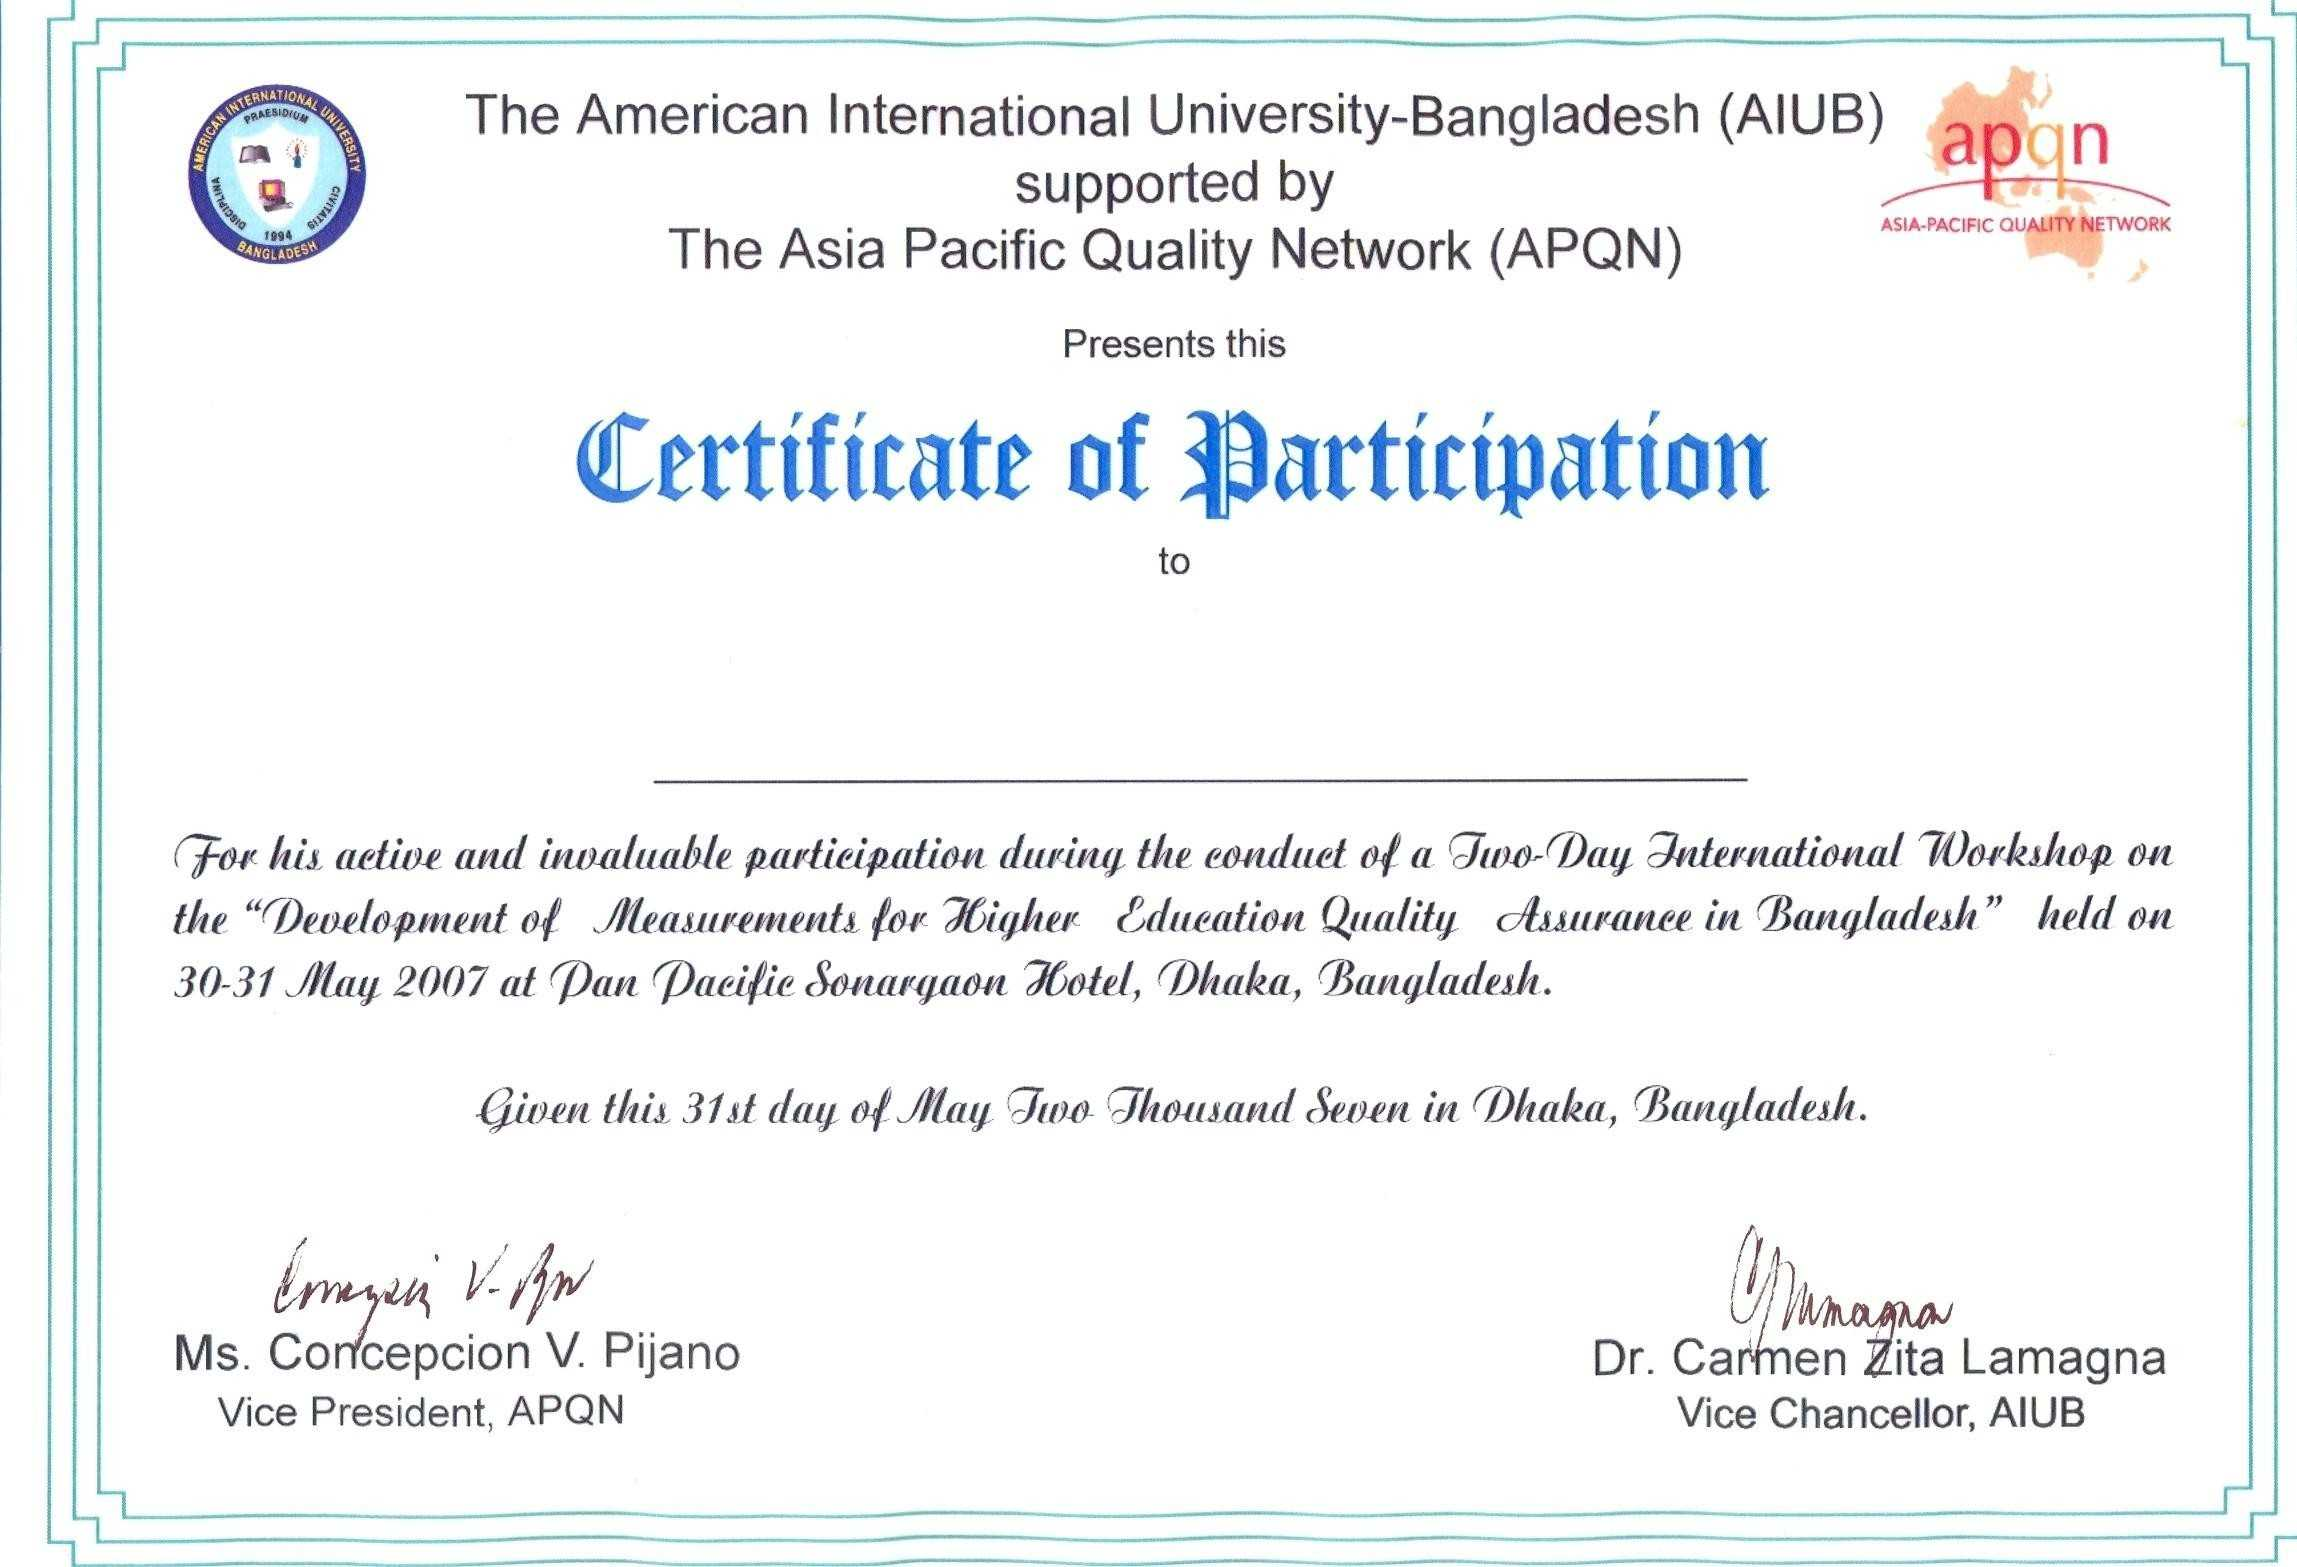 Conference Certificate Format - Mahre.horizonconsulting.co In Sample Certificate Of Participation Template